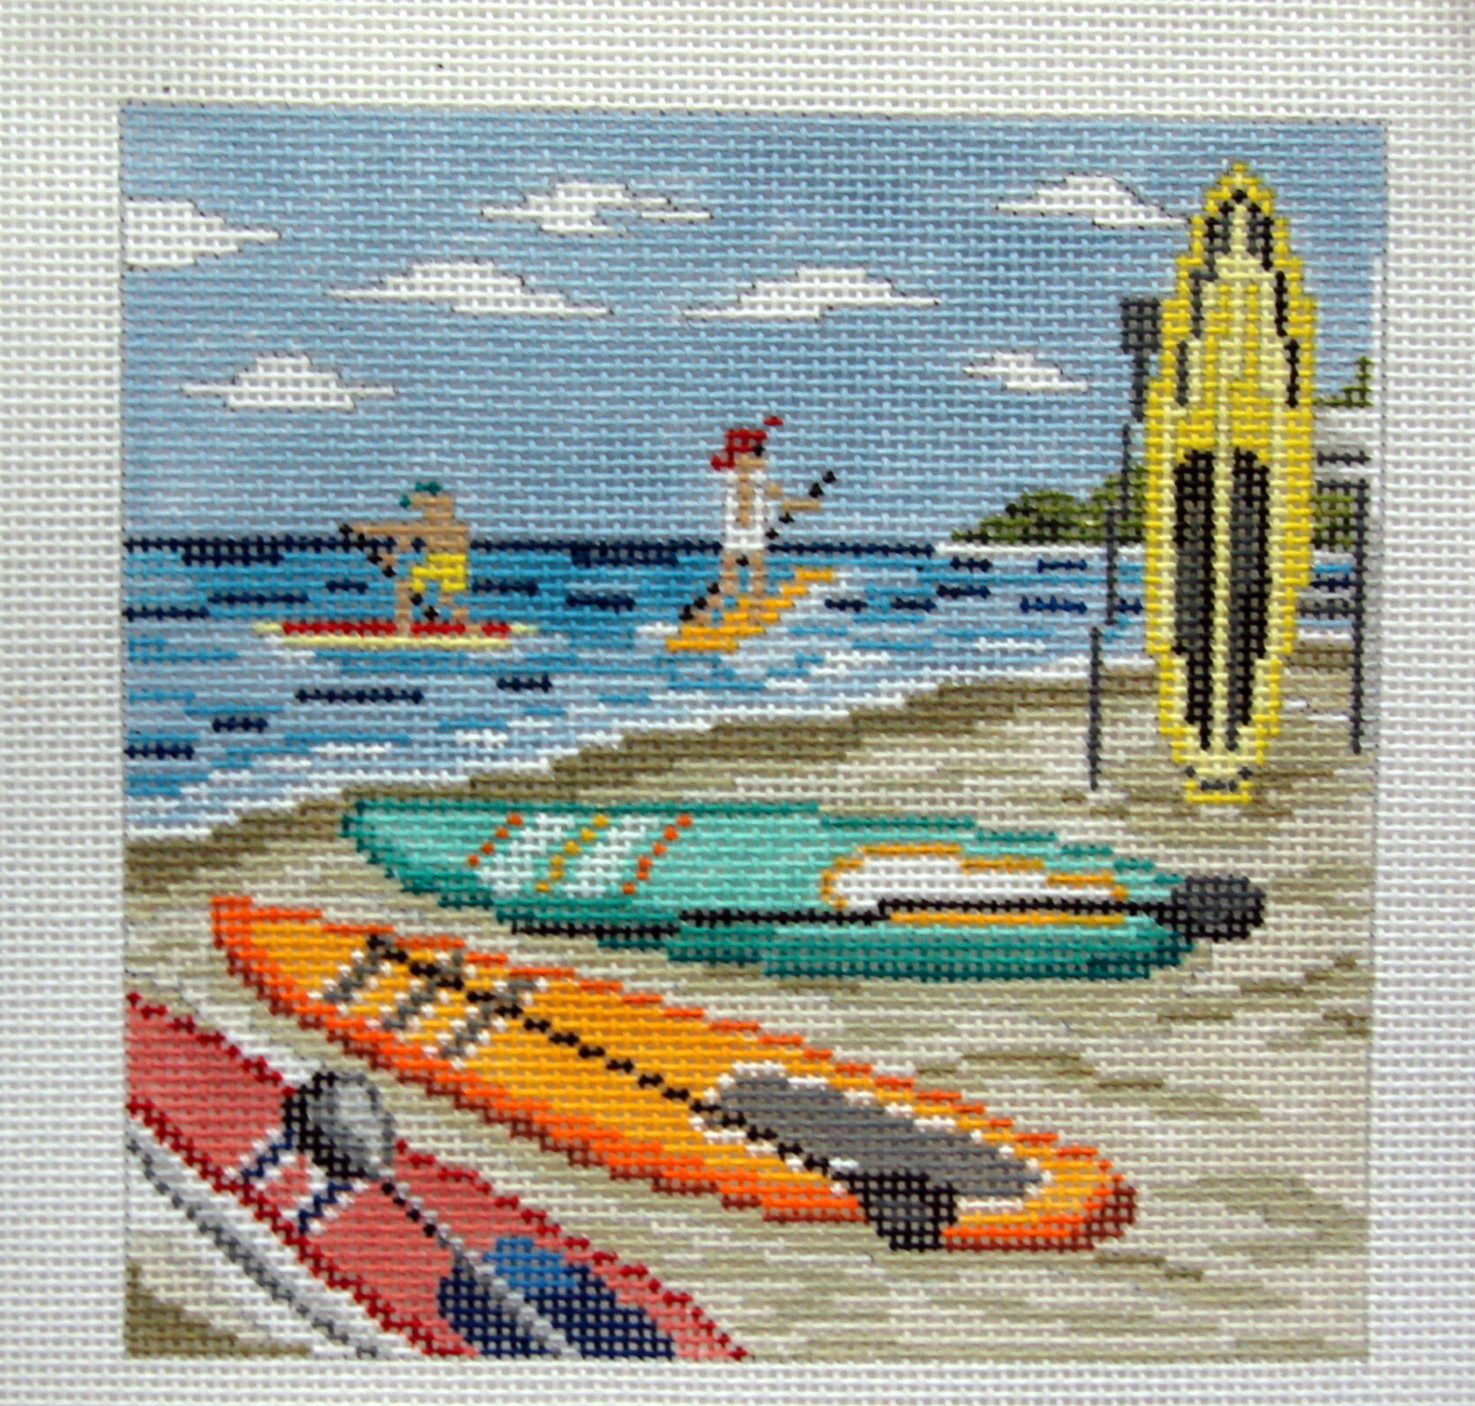 Paddle Boarding    (handpainted from Needle Crossing)